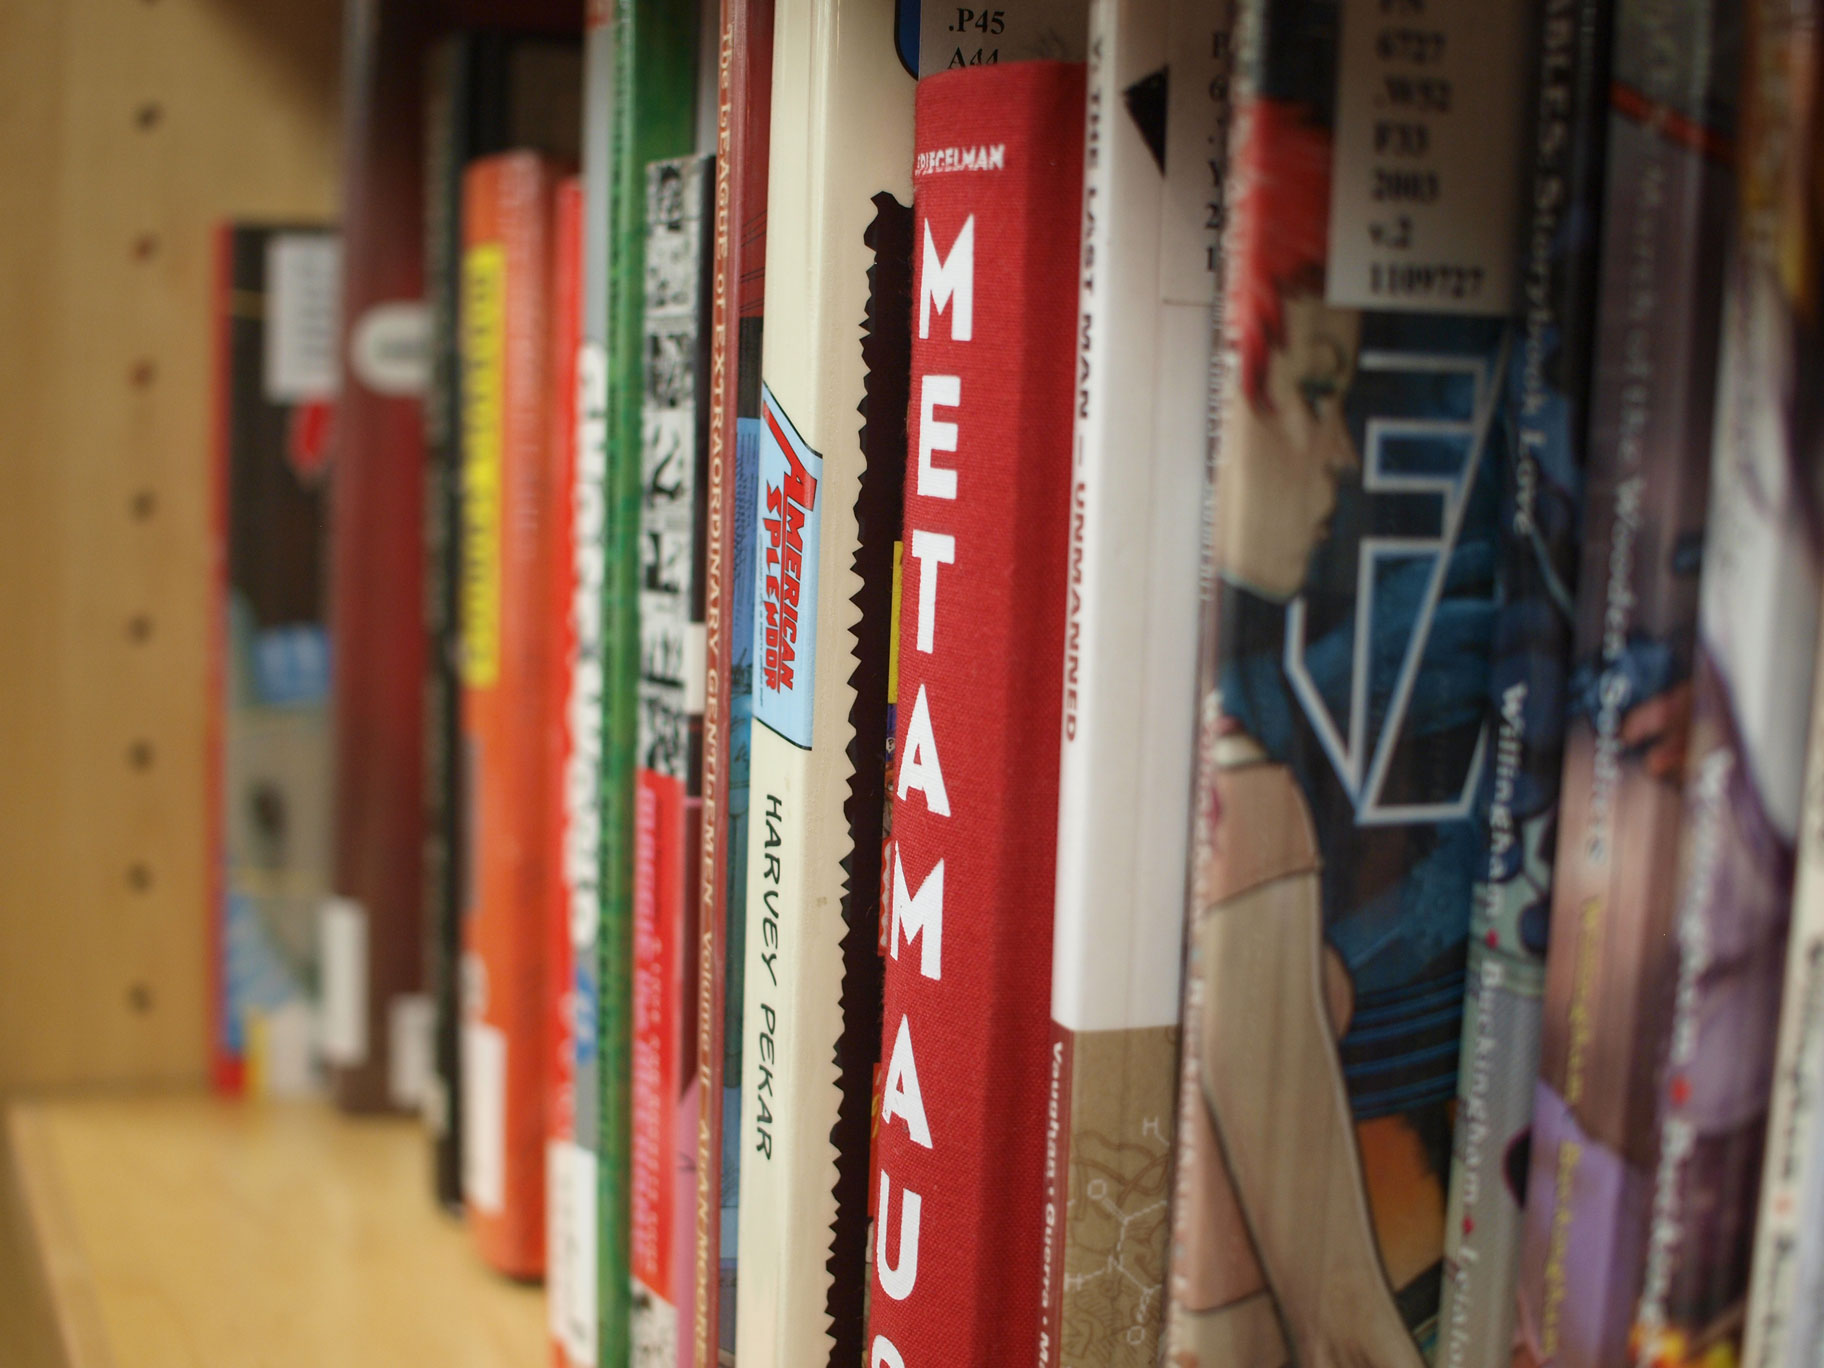 image of comic books on a shelf